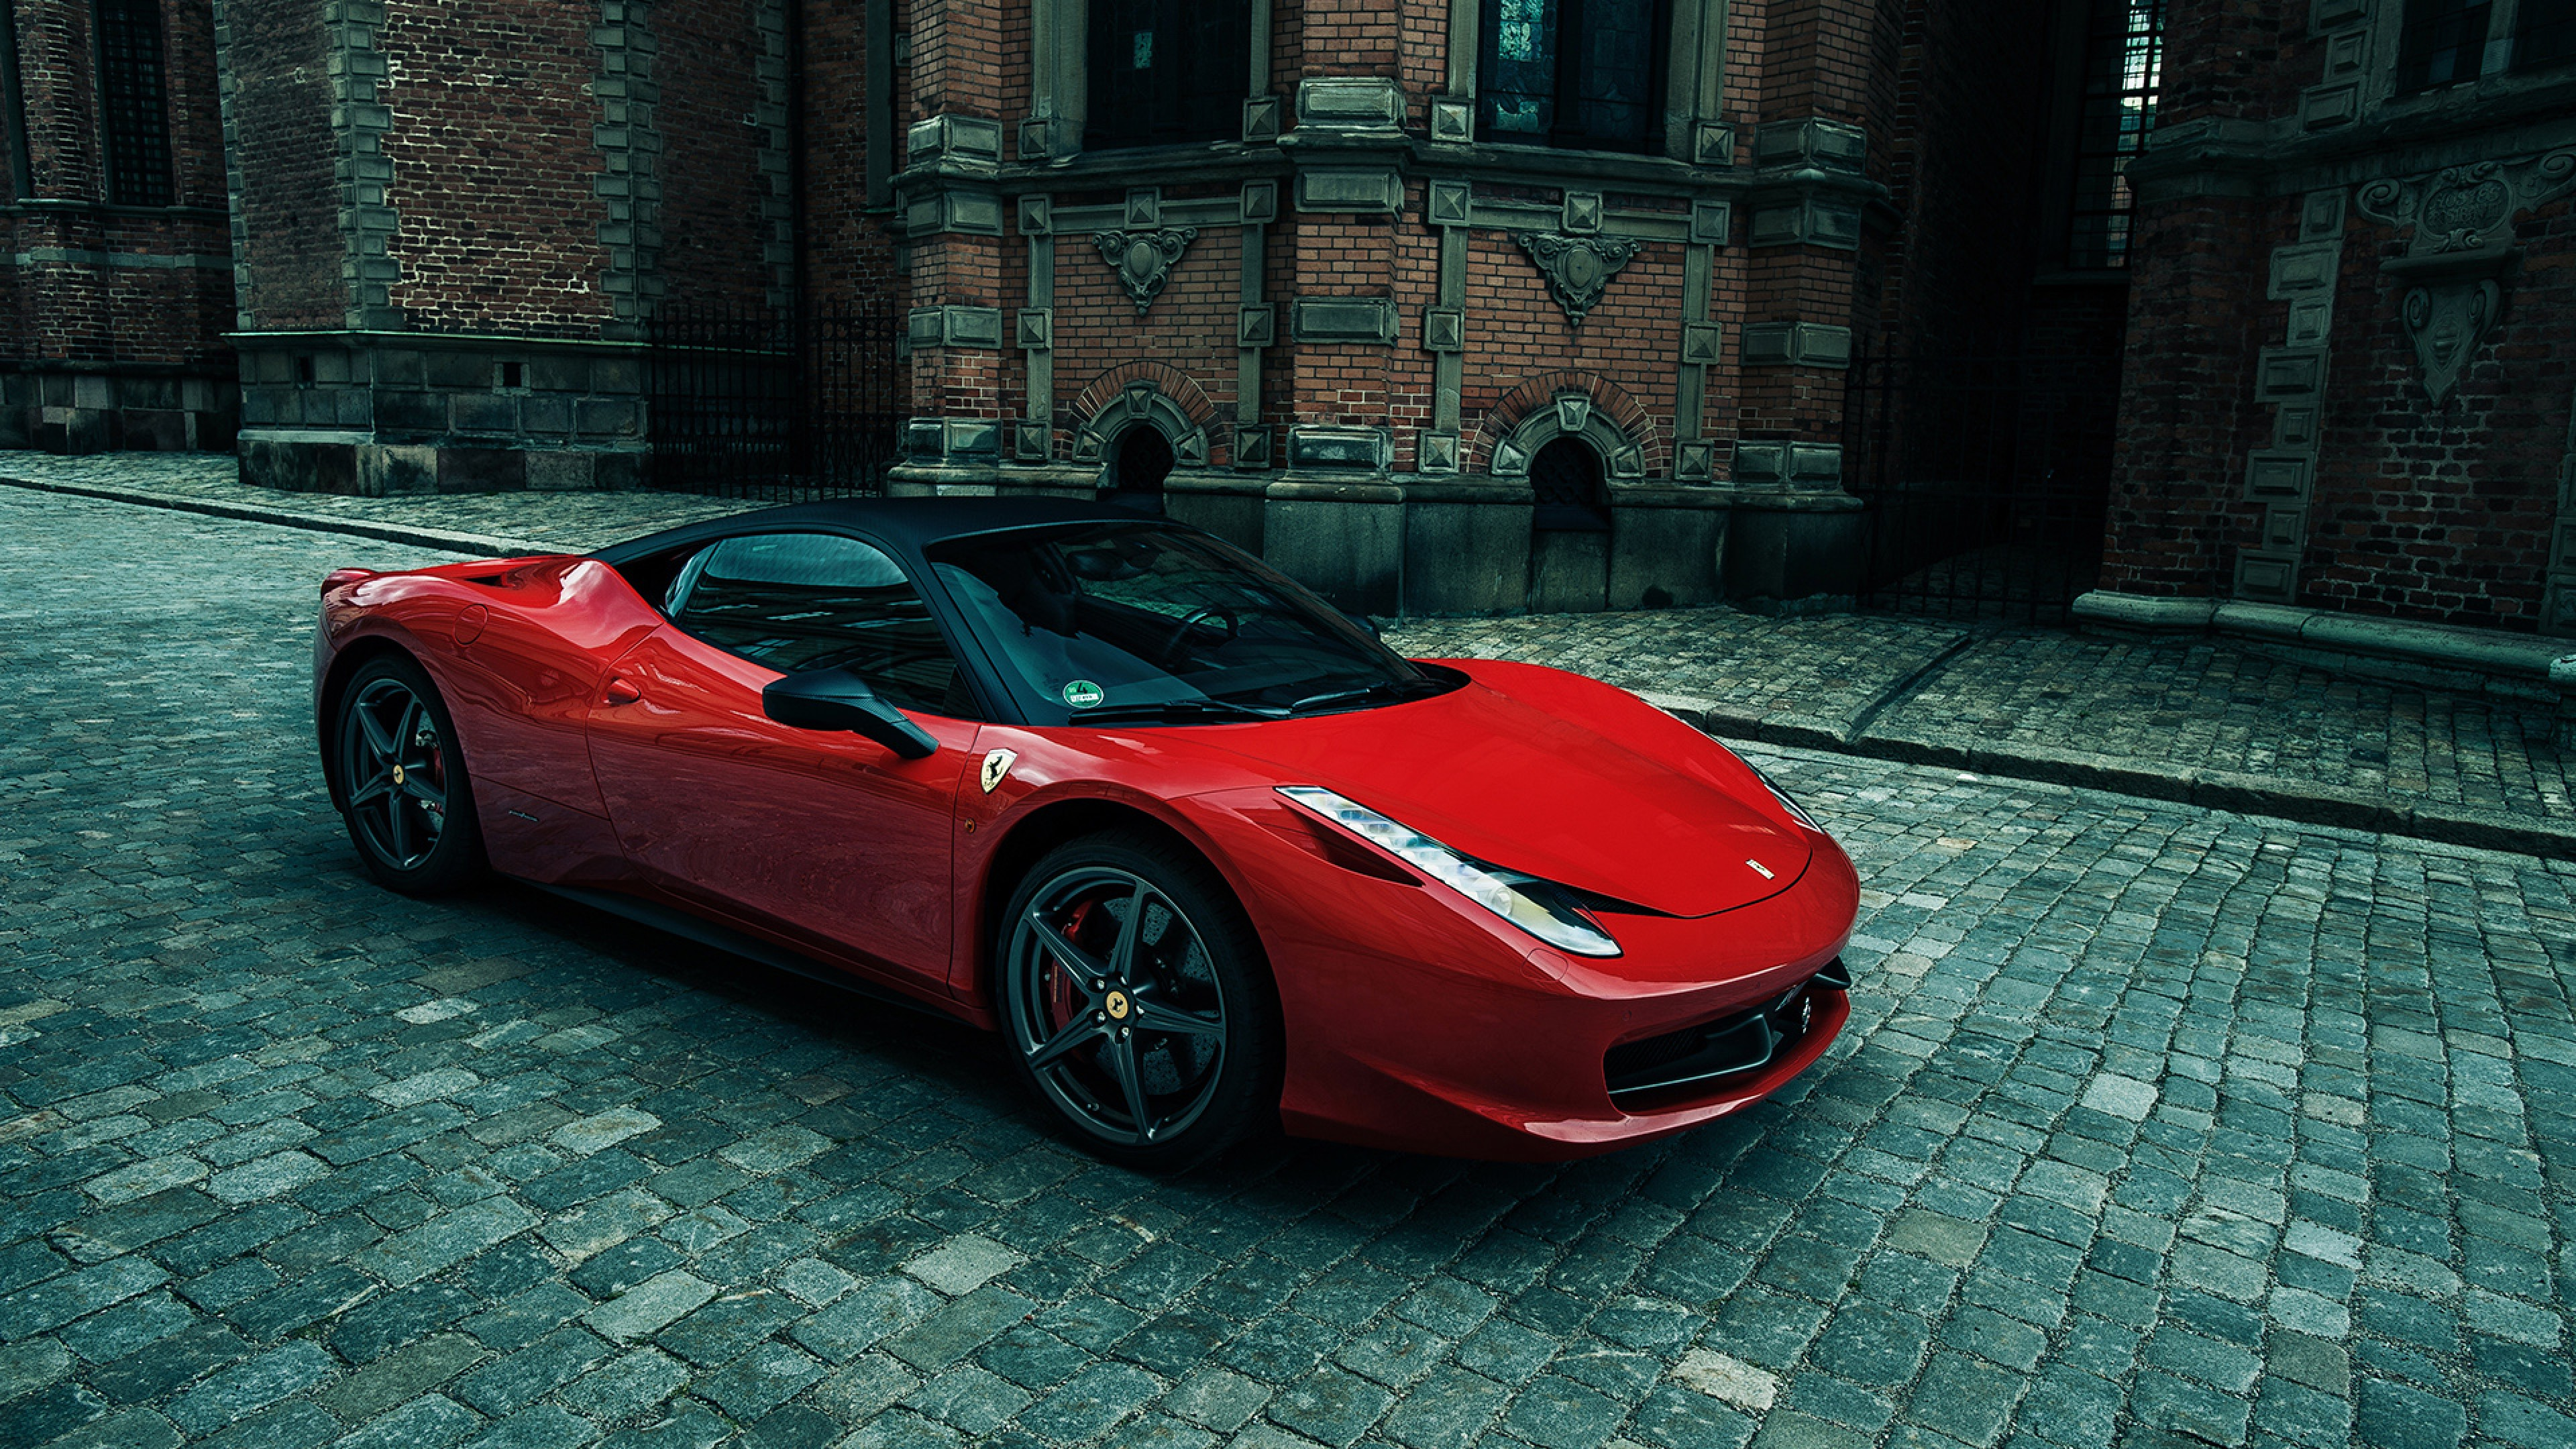 Ferrari 458 Italia Car Wallpaper For Desktop And Mobiles 4k Ultra Hd